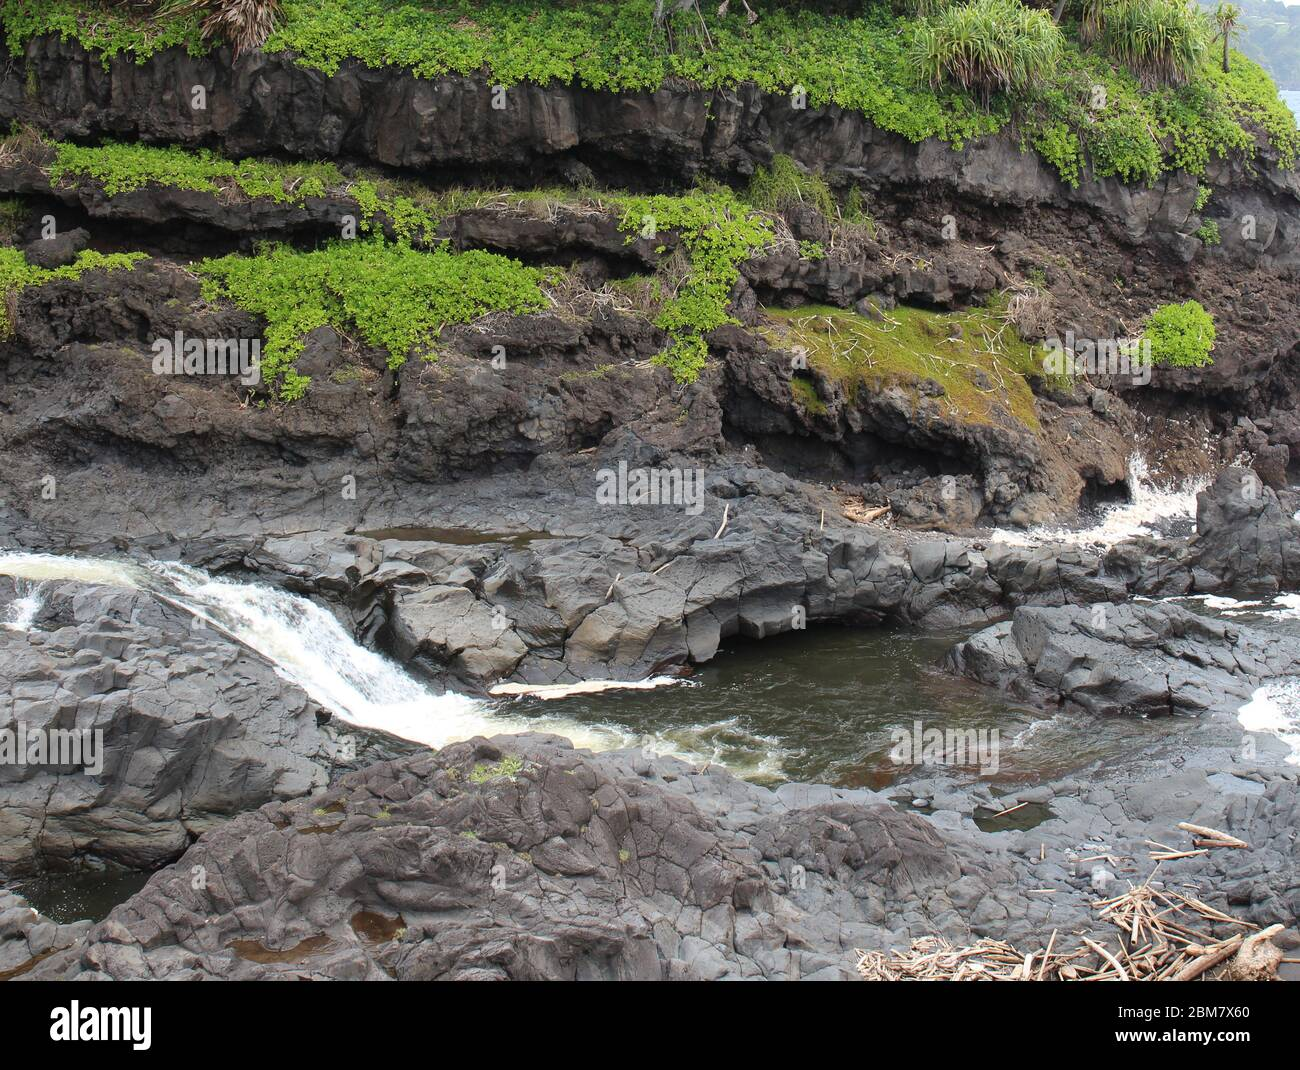 Palikea stream running through volcanic rock with Scaevola taccada and tropical trees growing on the rock at the Oheo Gulch in Hana, Maui, Hawaii, USA Stock Photo